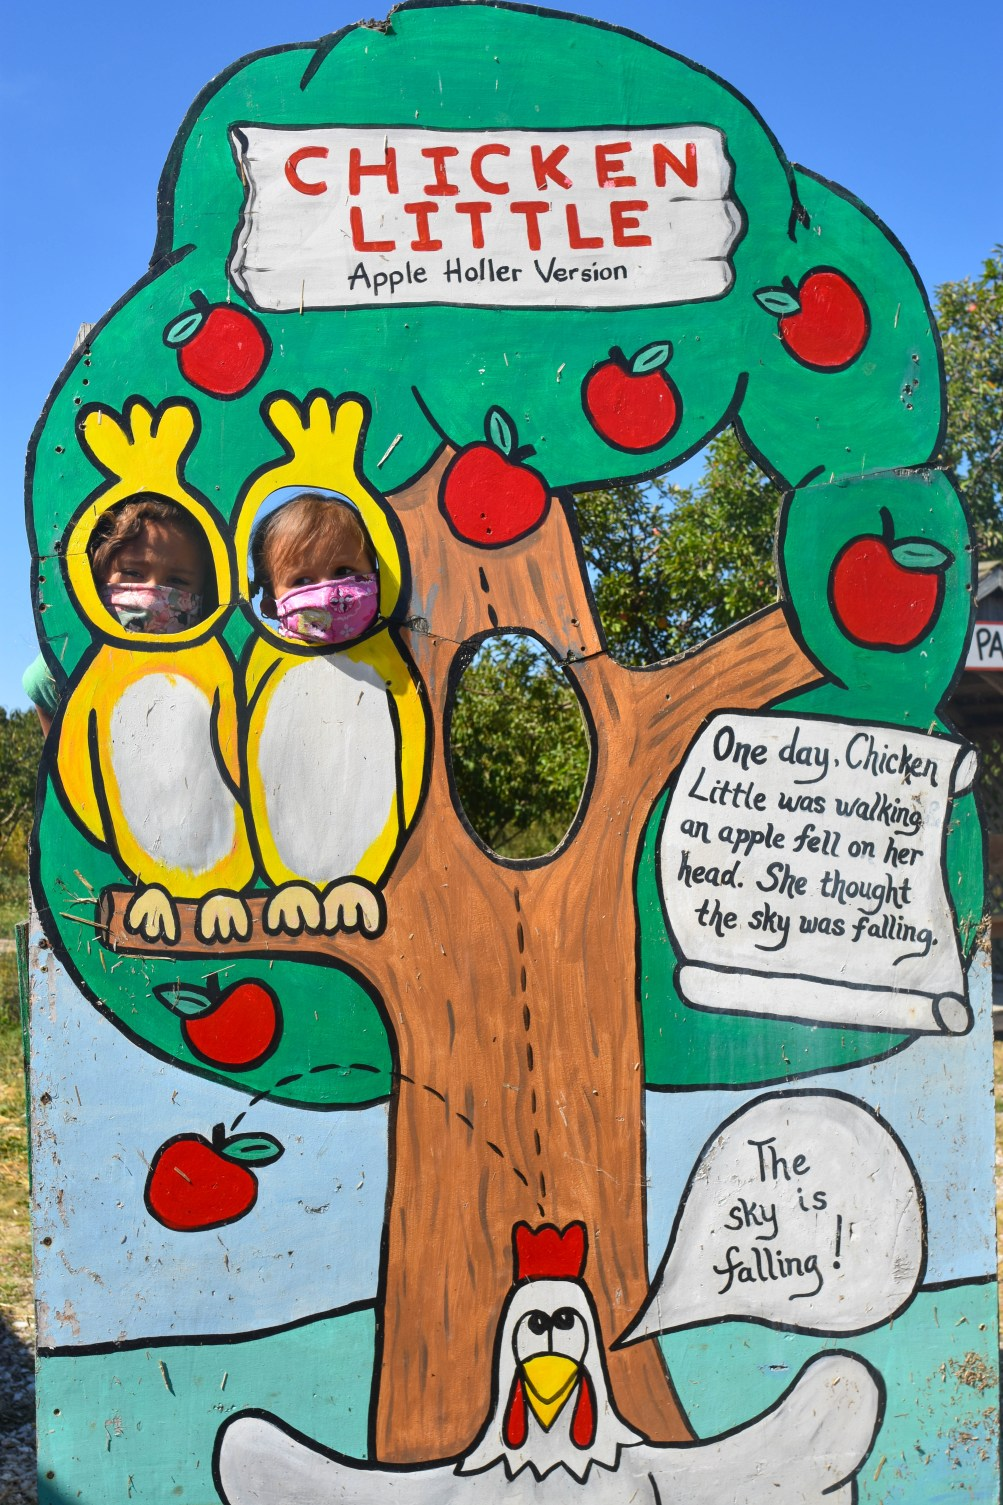 Photo cutouts at Apple Holler near Chicago